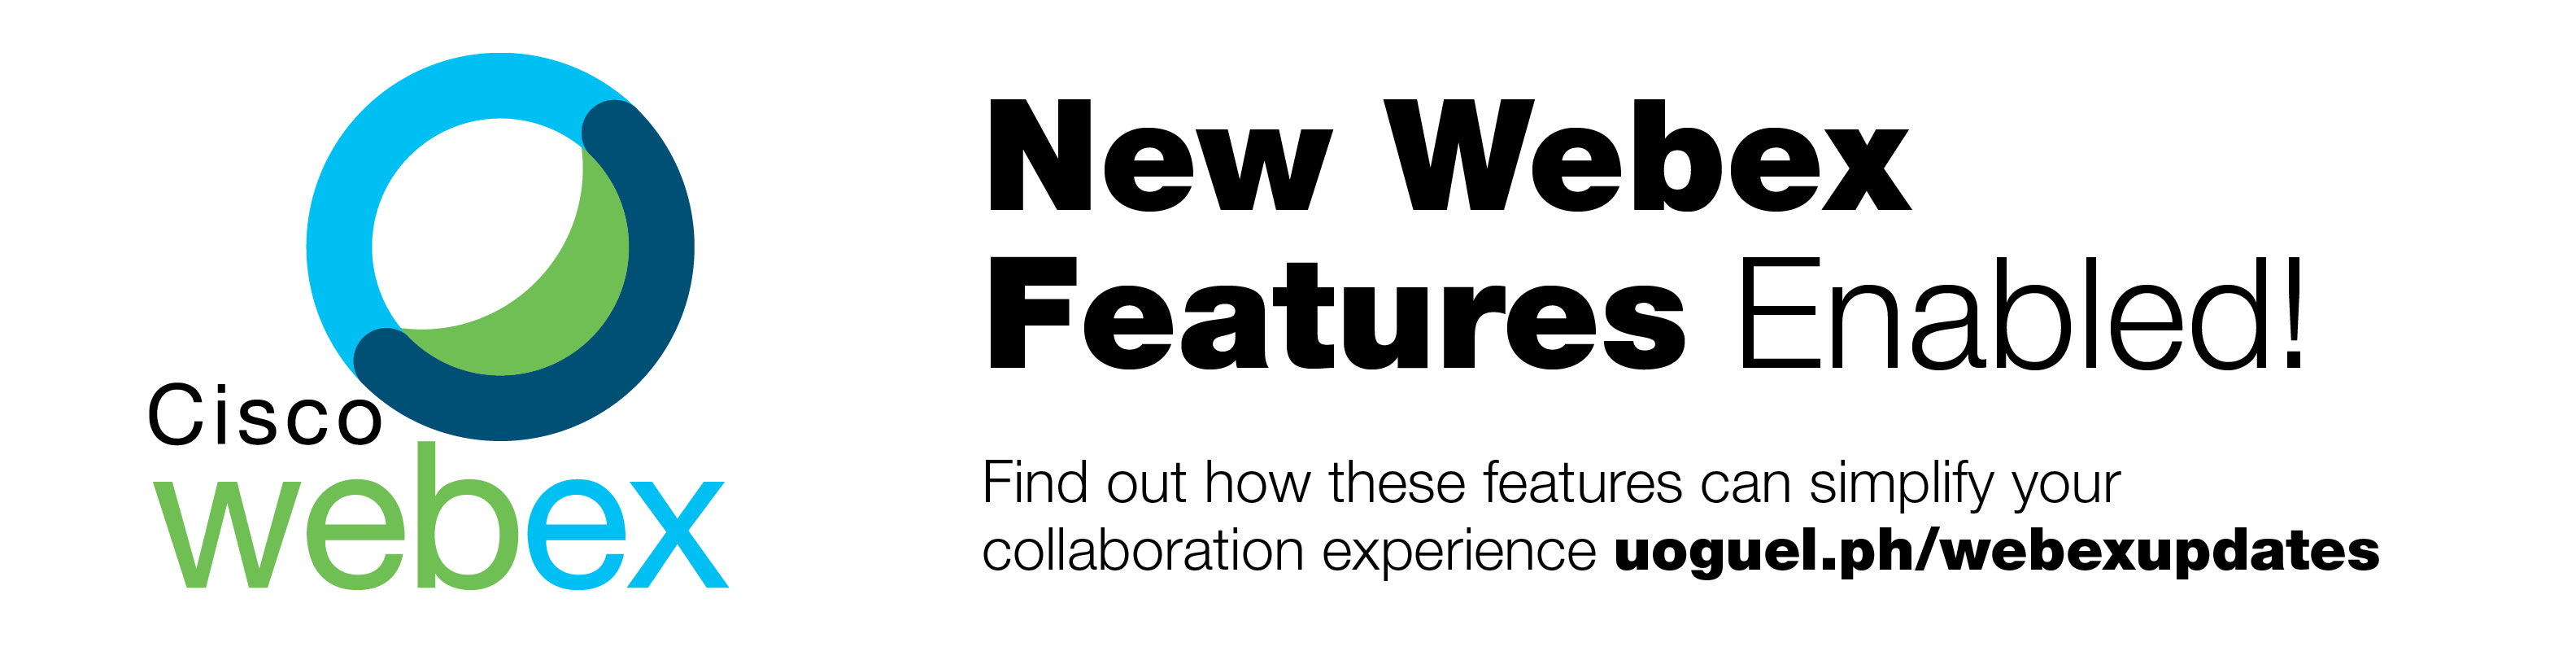 New Webex Features Enabled! Find out how these features can simplify your collaboration experience